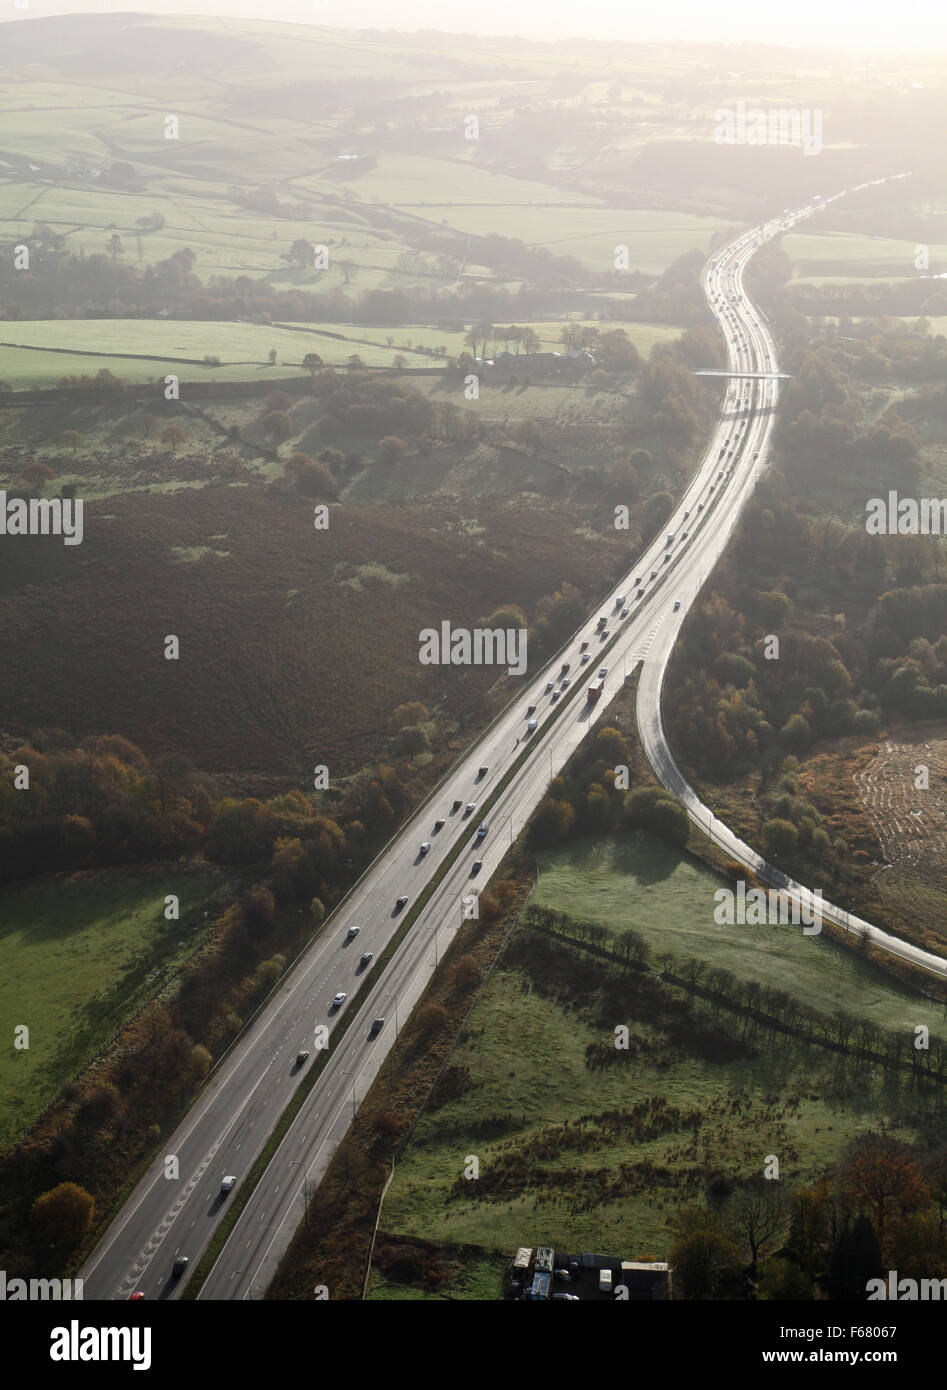 aerial view of a dual carriageway main road into the sun, UK - Stock Image